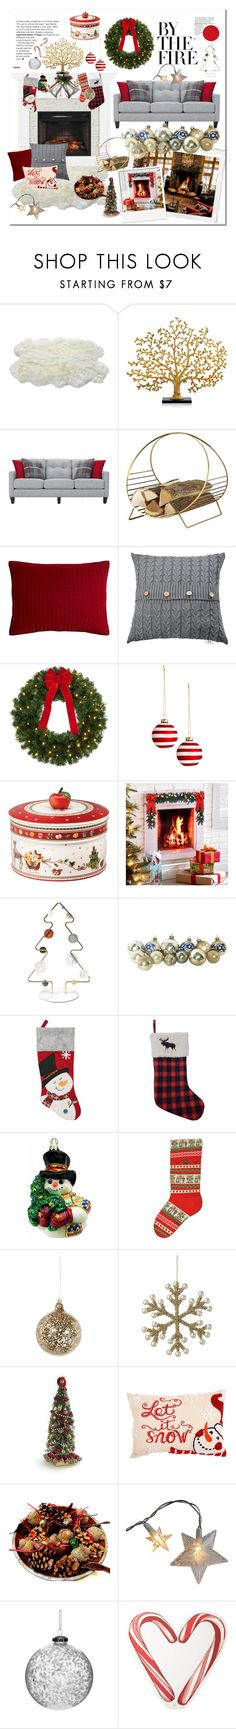 """""""New Year 's fireplace"""" by foximperial ❤ liked on Polyvore featuring interior, interiors, interior design, home, home decor, interior decorating, Luxe Collection, Michael Aram, Pier 1 Imports and Villeroy & Boch"""